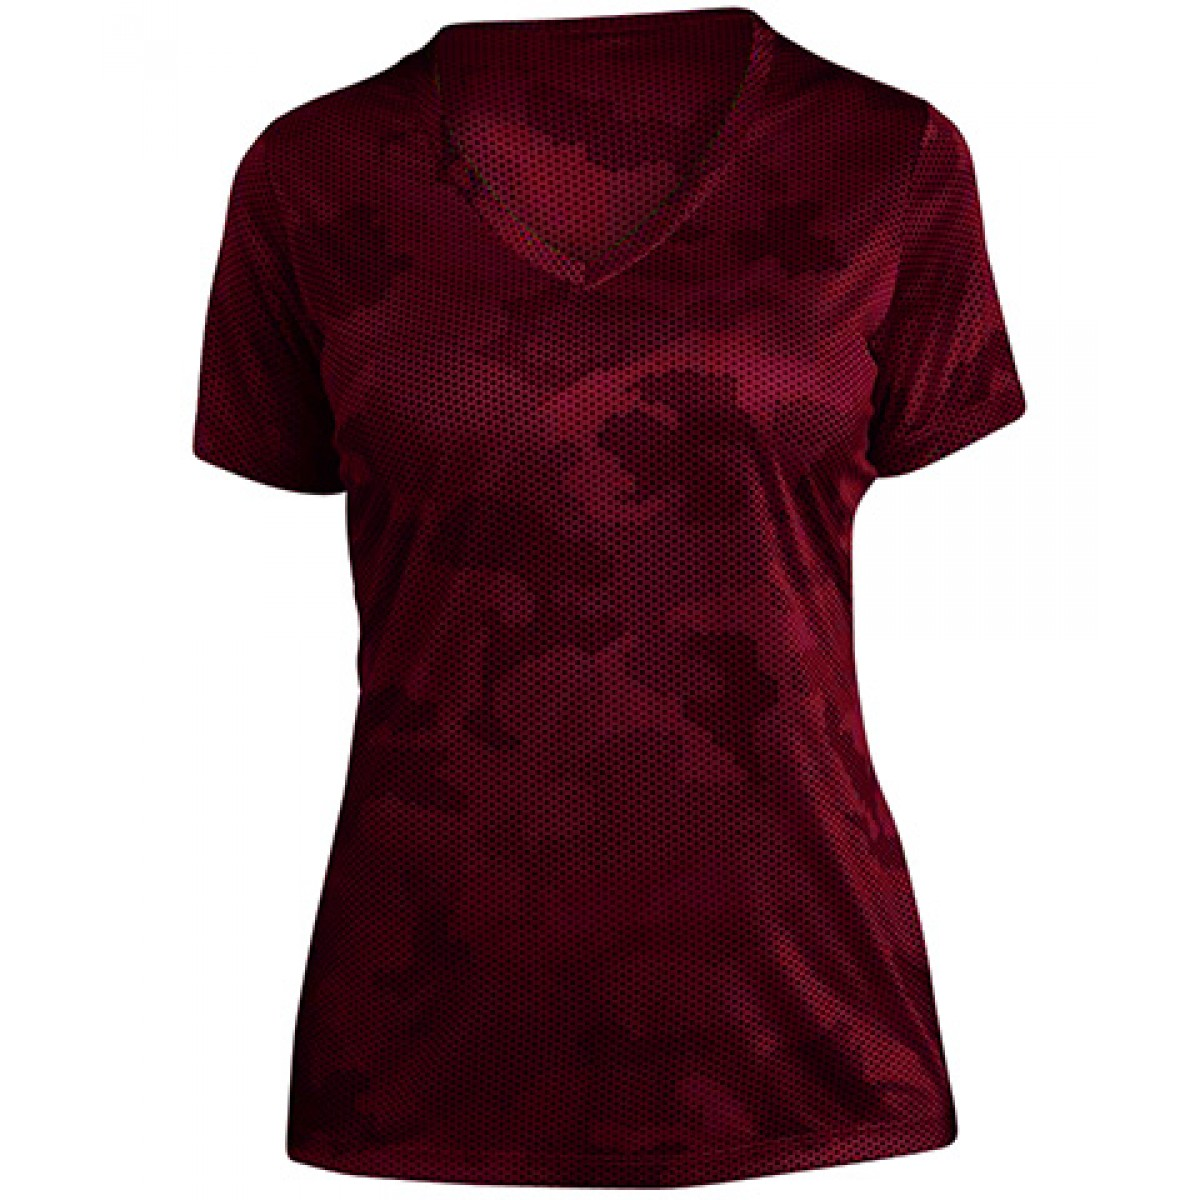 Ladies CamoHex V-Neck Tee-Red-M